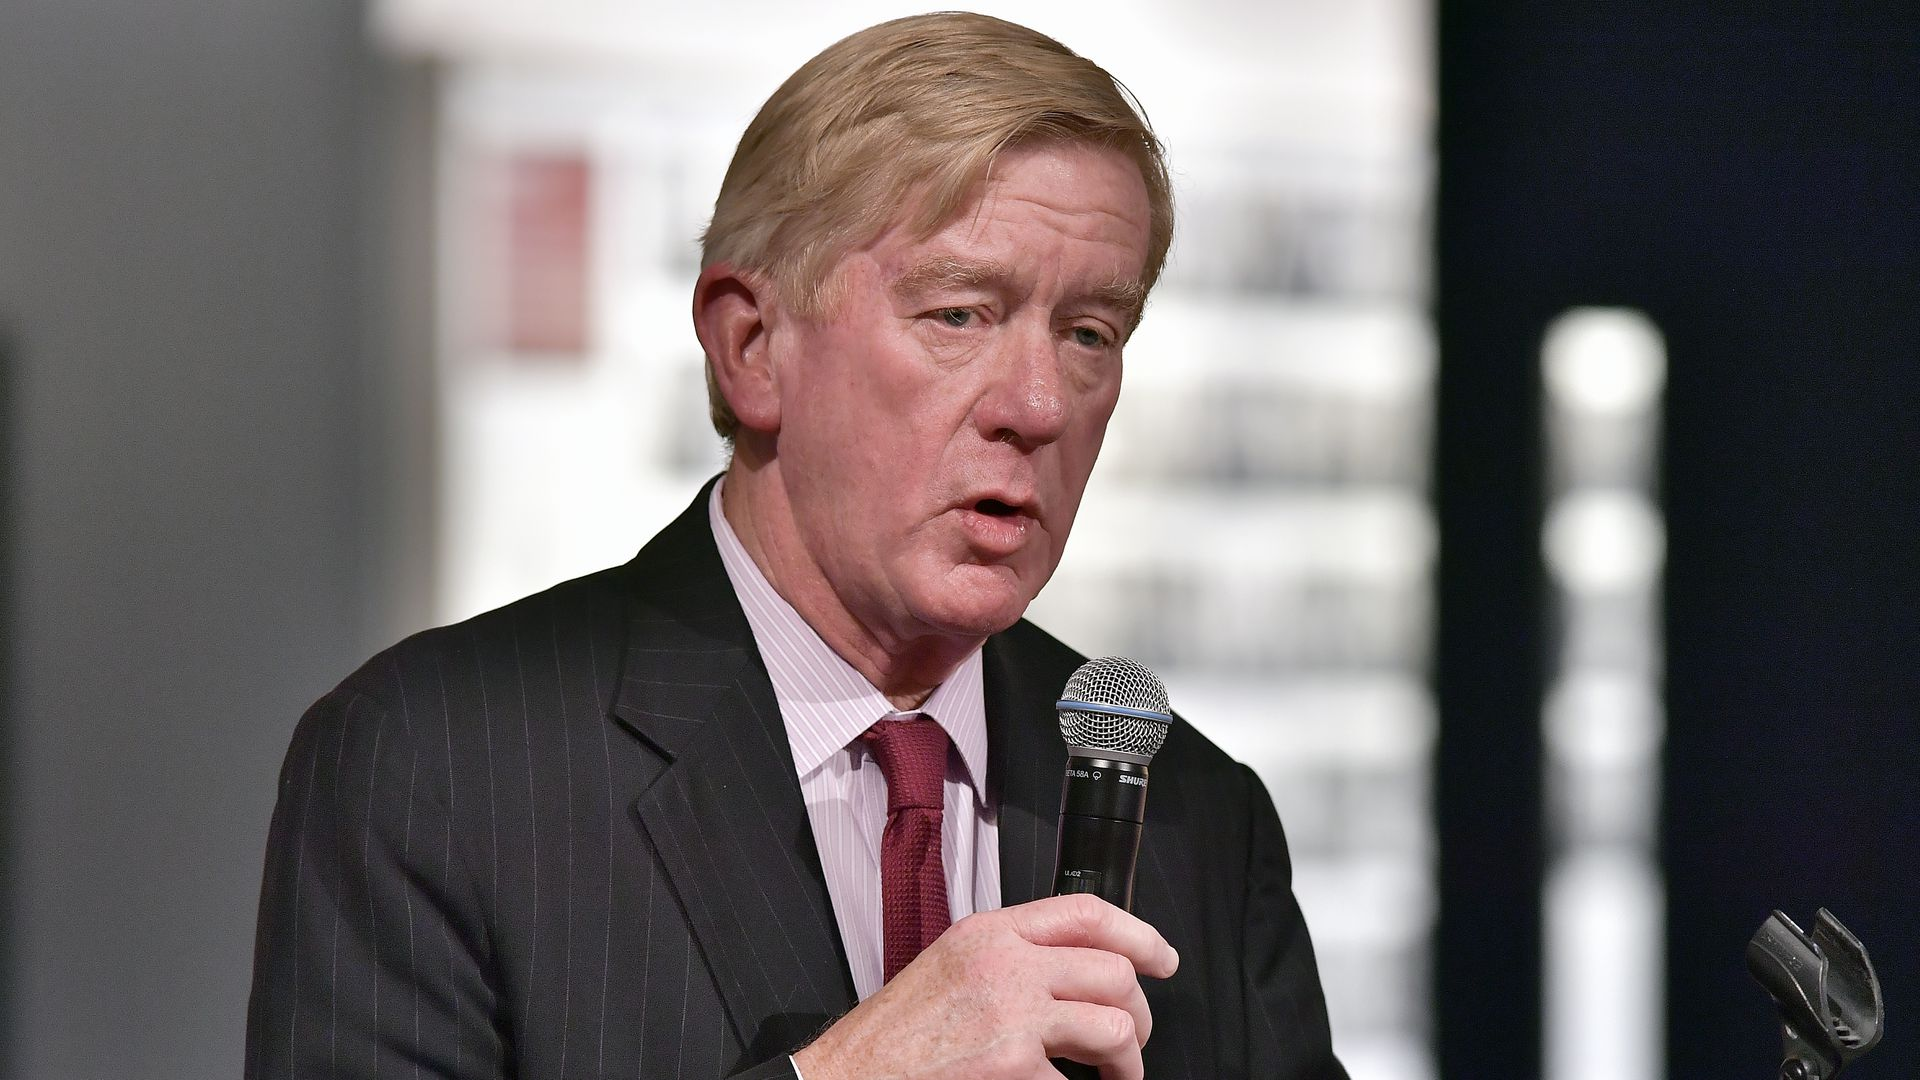 Former Massachusetts Governor William Weld at Harvard University's Shorenstein Center on Media, Politics and Public Policy on March 6, 2018 in Cambridge, Massachusetts.